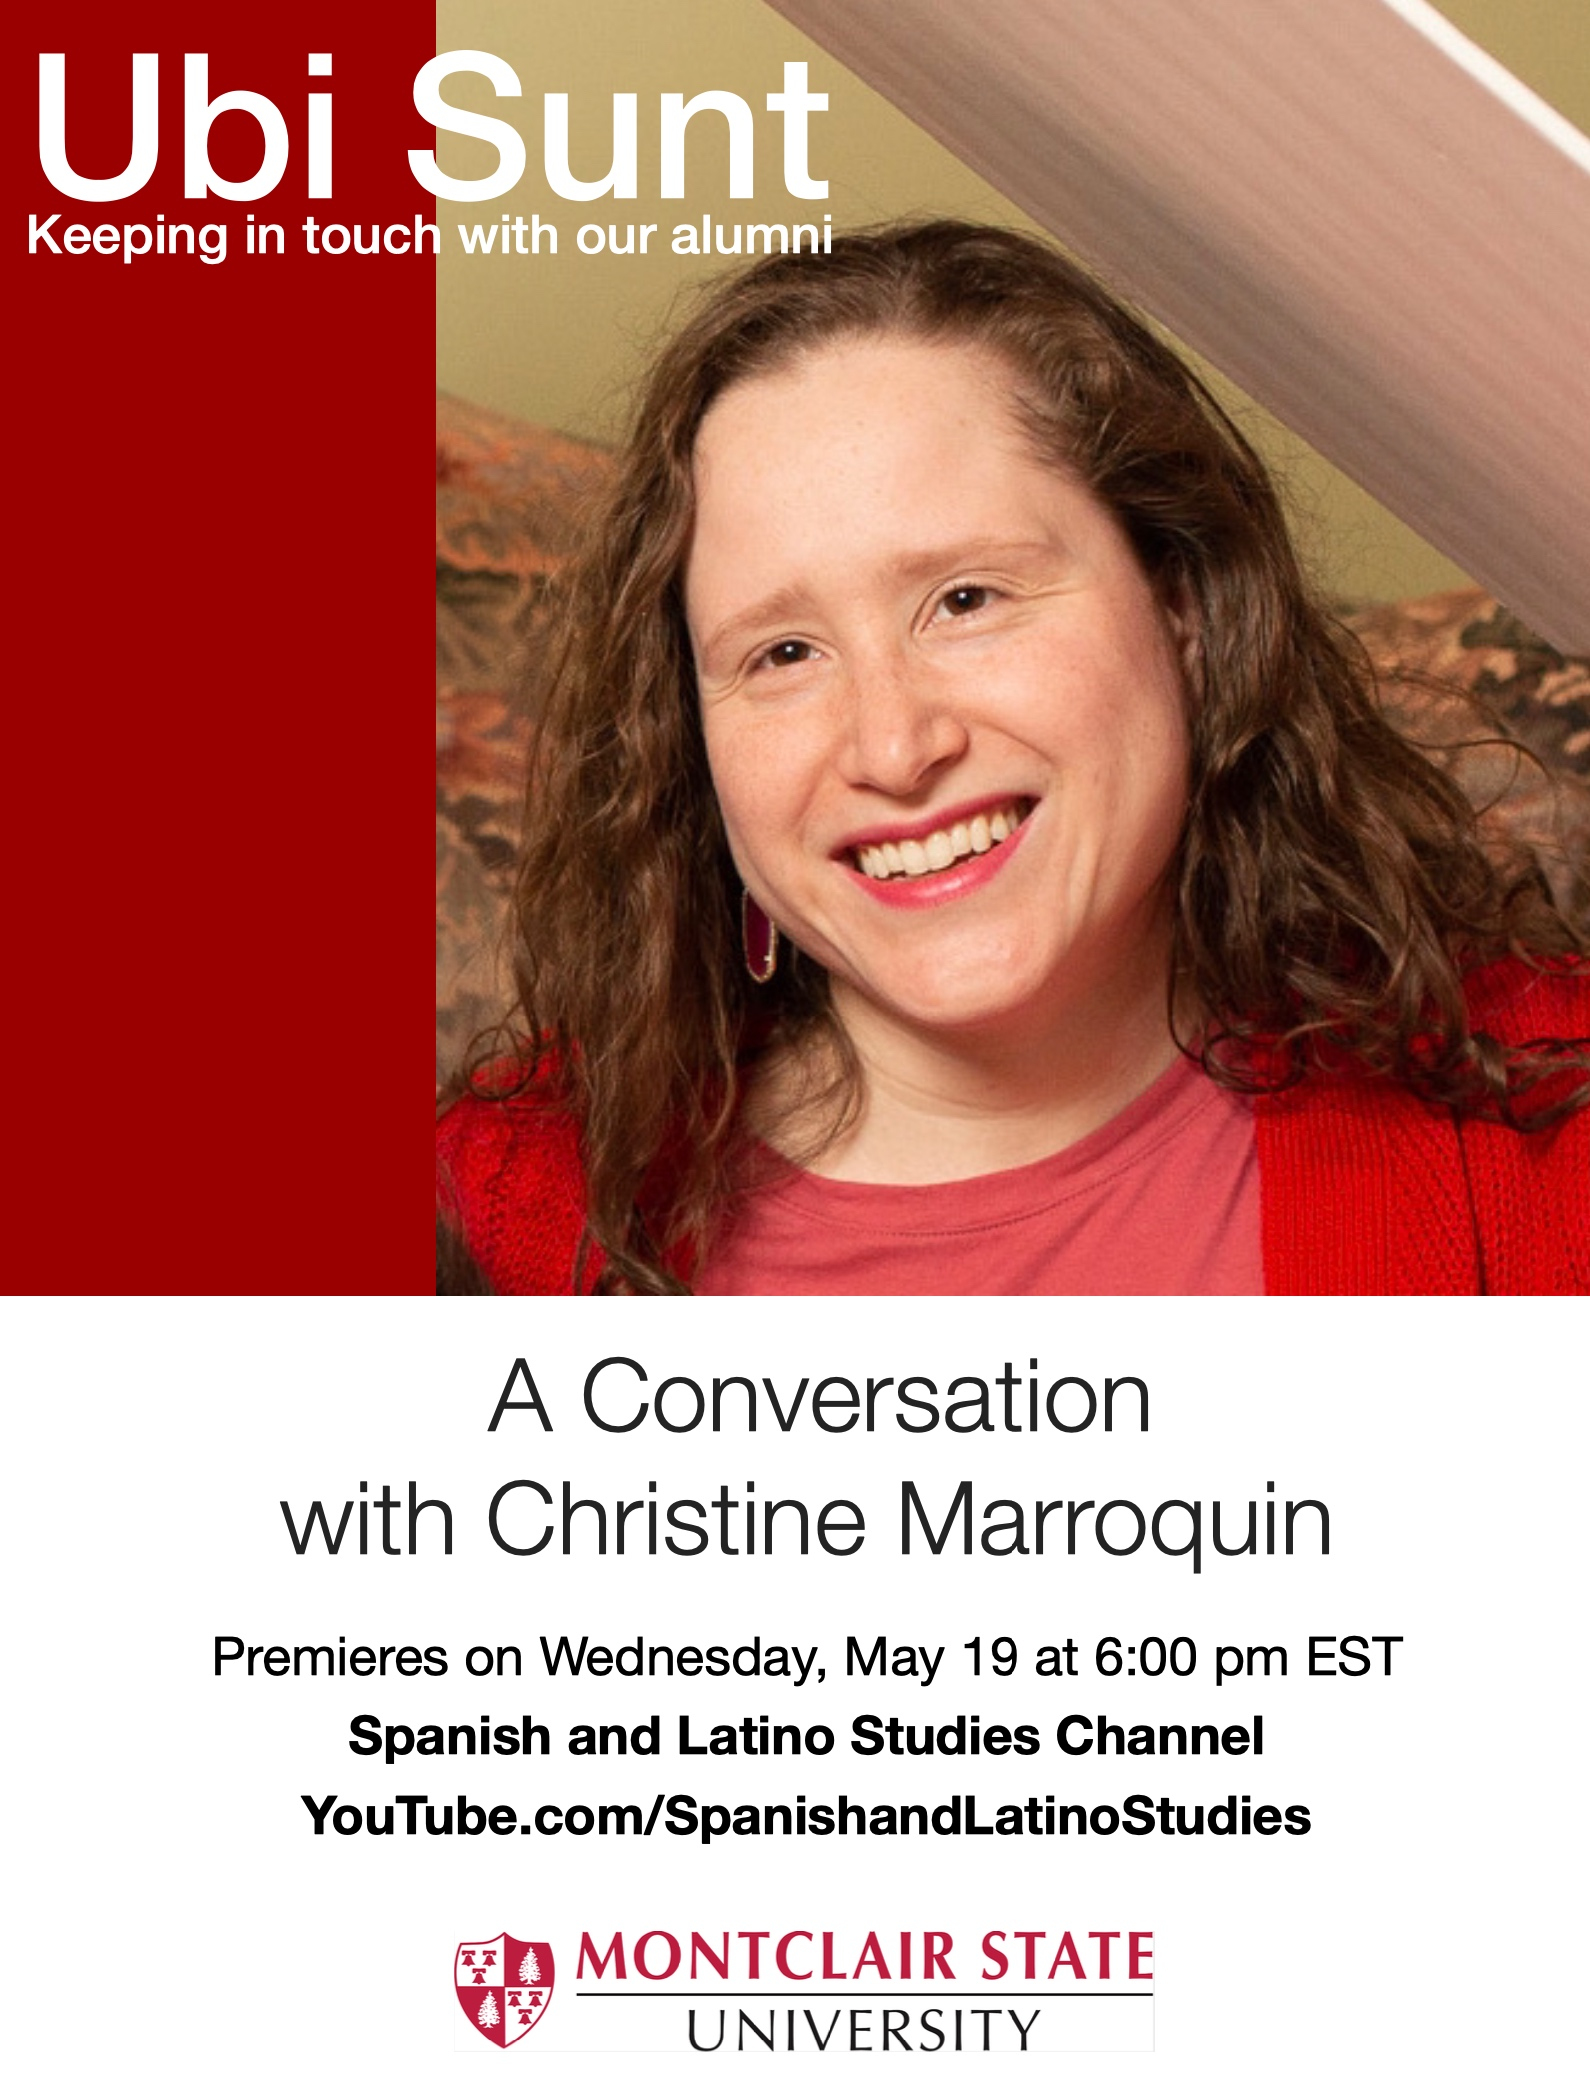 A Conversation with Christine Marroquin